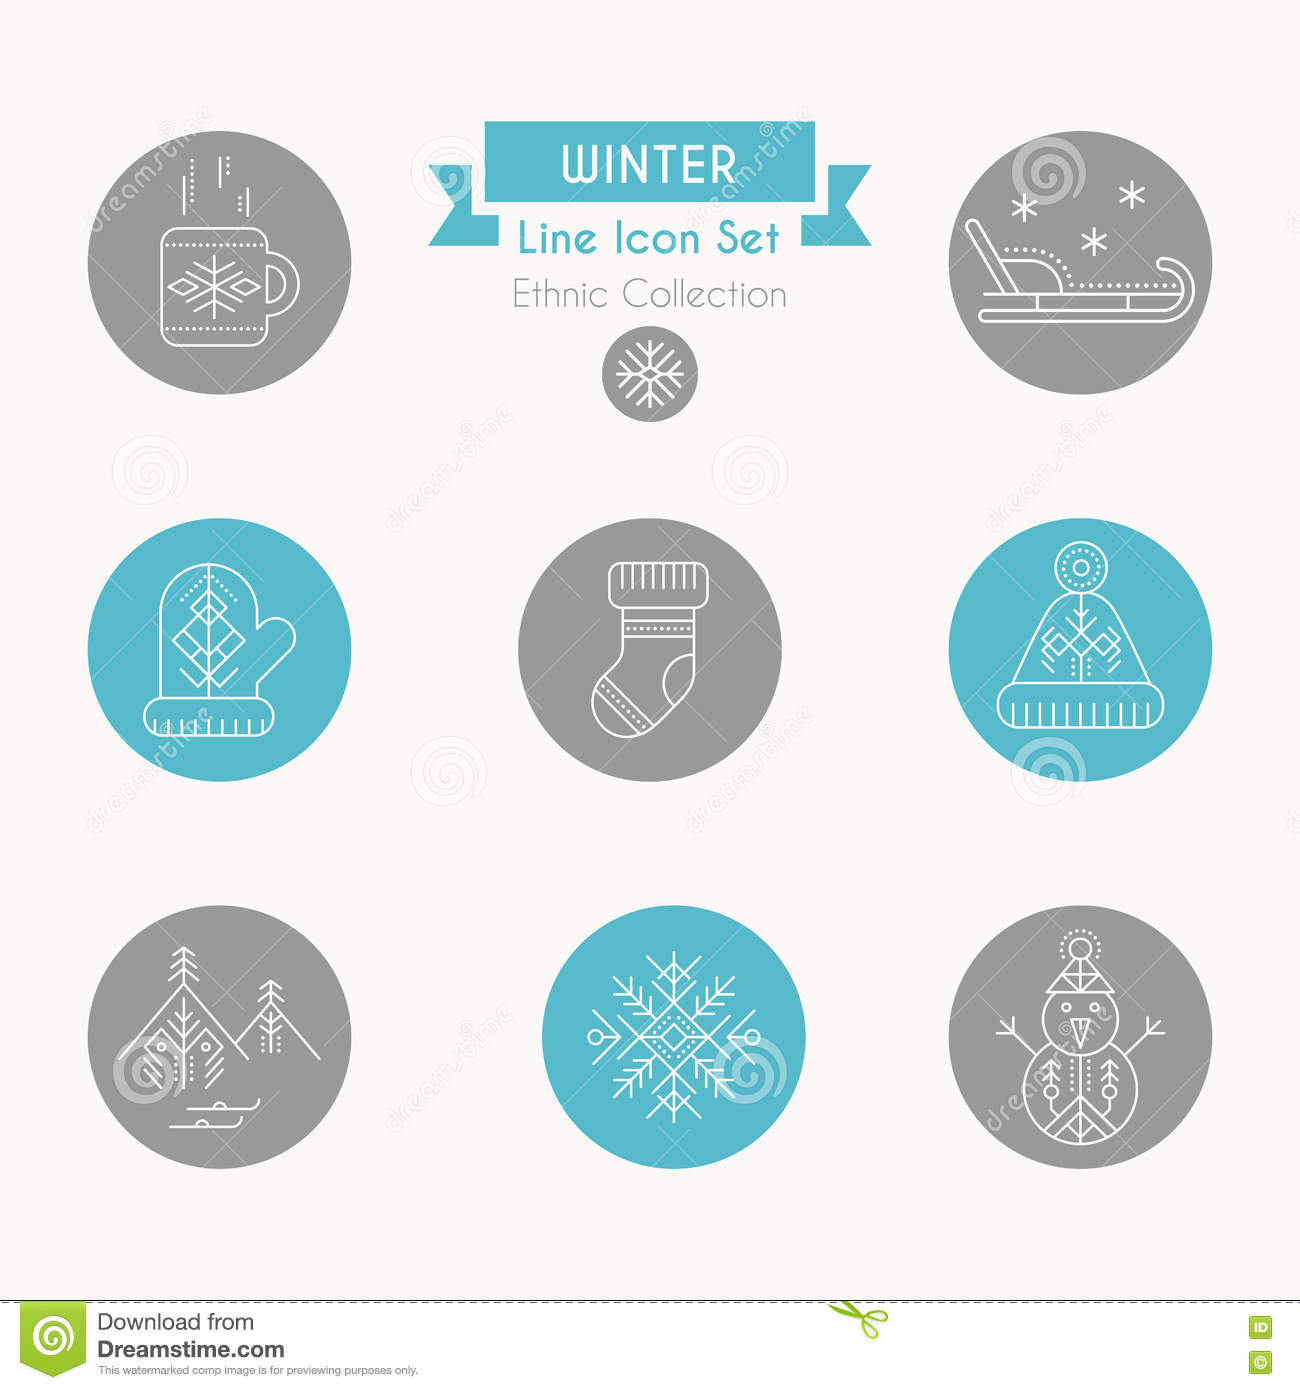 Winter icon set. Collection of creative line style design elements